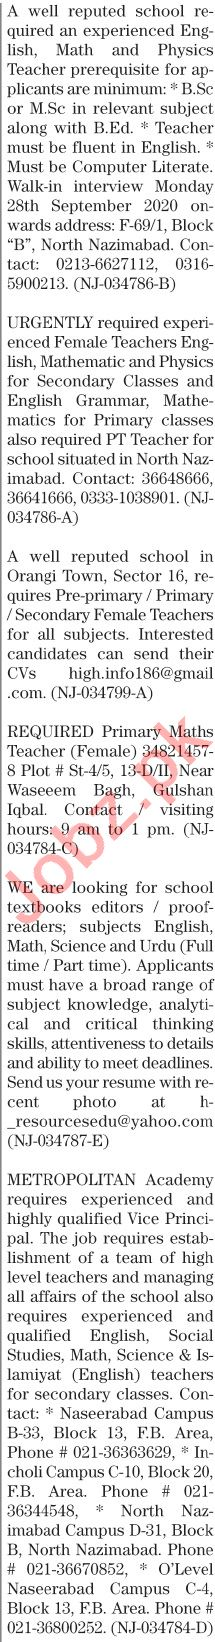 The News Sunday Classified Ads 27 Sept 2020 for Teachers